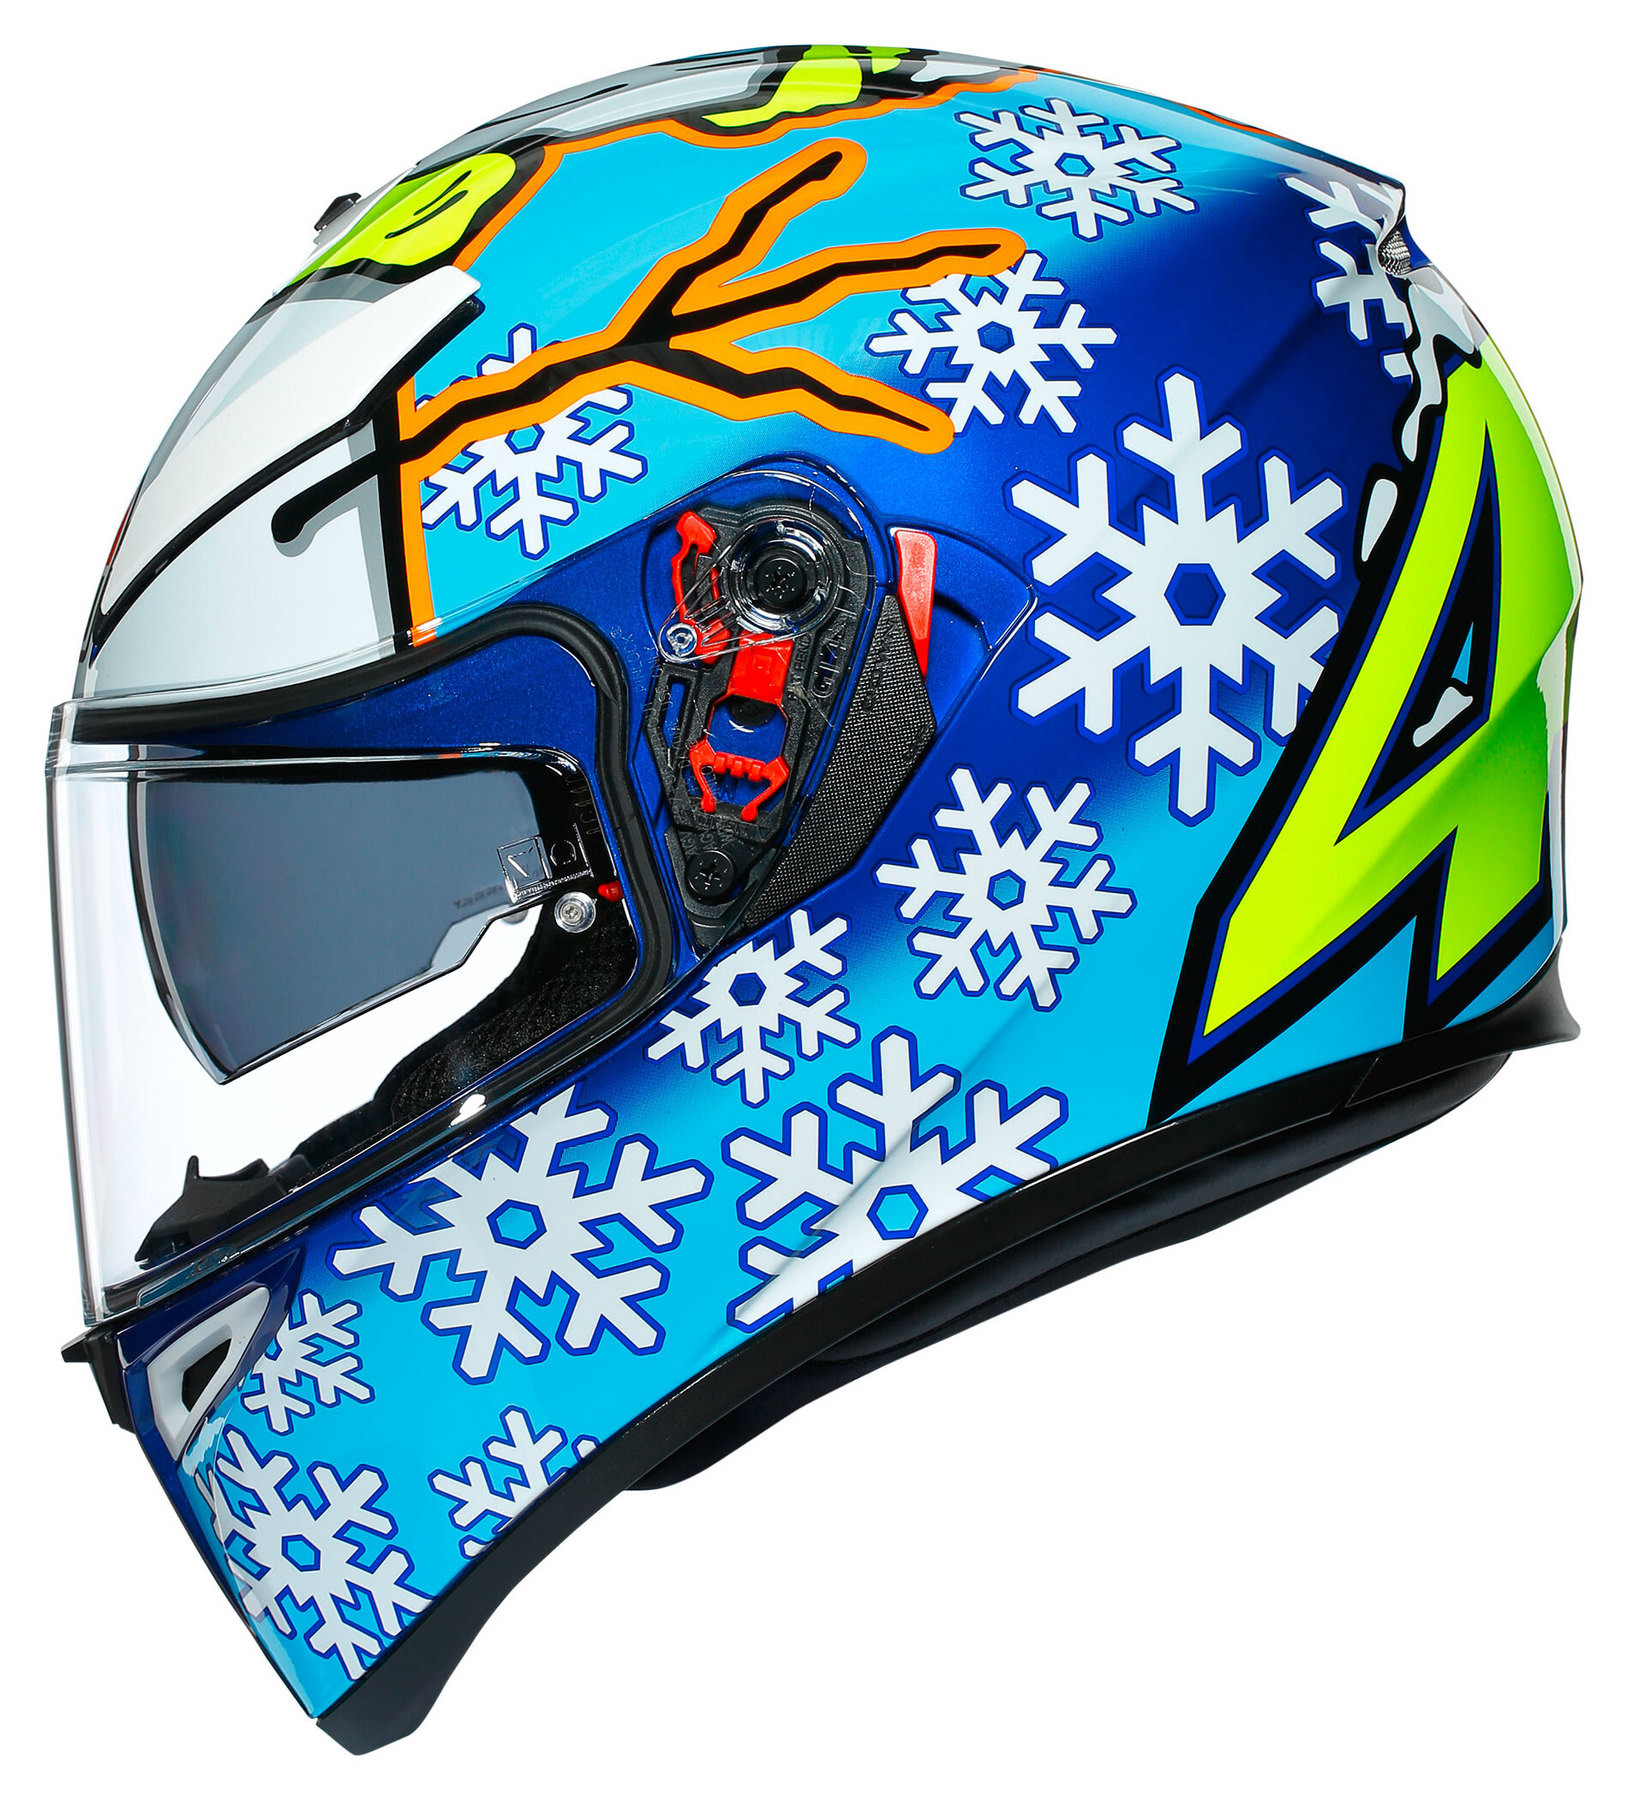 Buy Agv K3 Sv Rossi Wintertest 2016 Full Face Helmet Louis Motorcycle Clothing And Technology